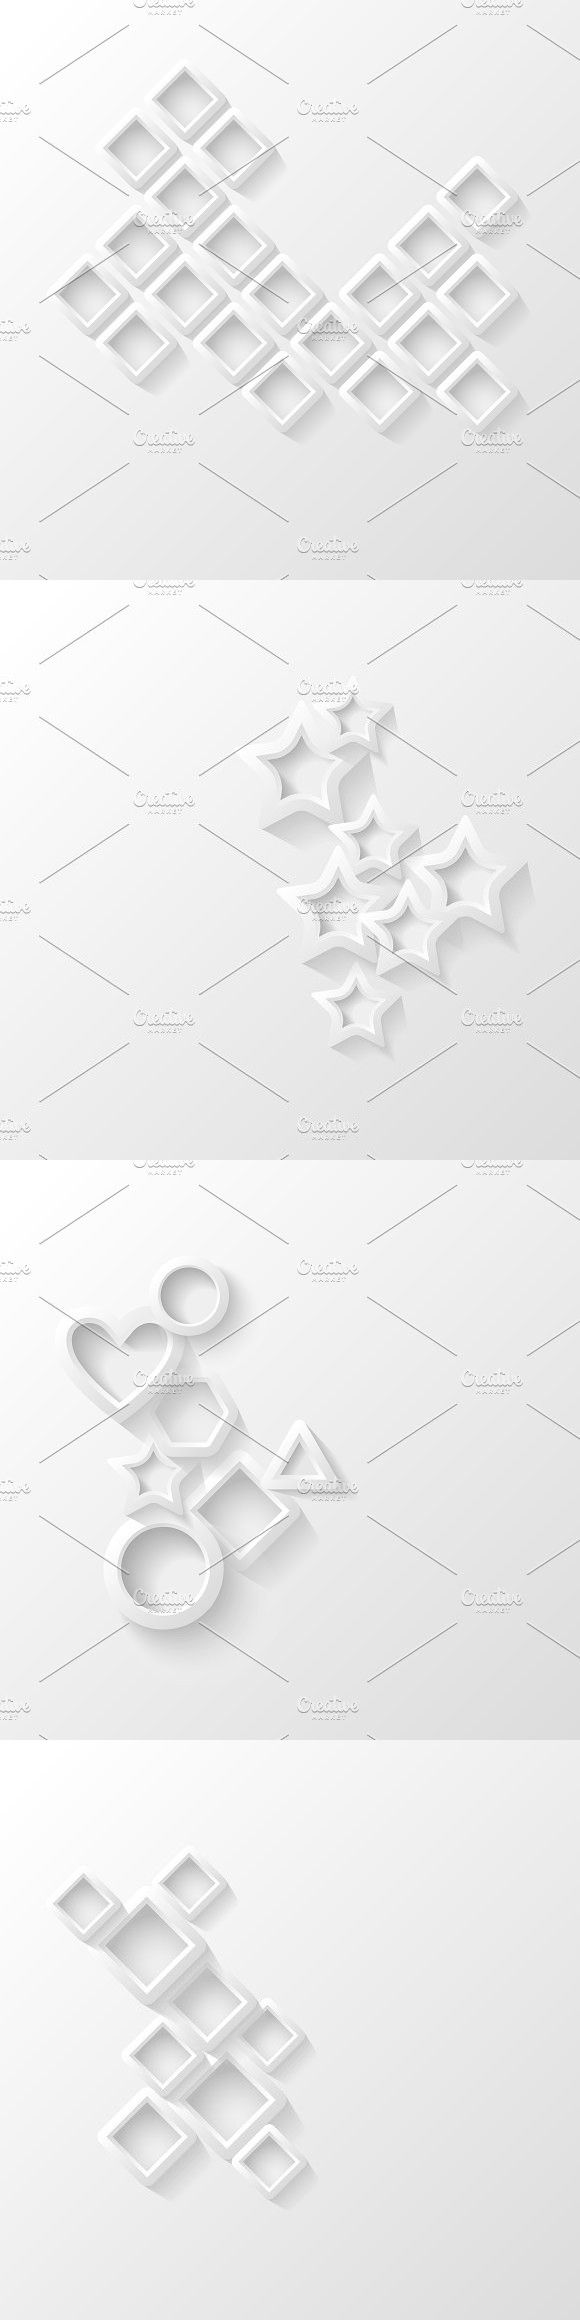 Set of abstract backgrounds. Patterns. $2.00